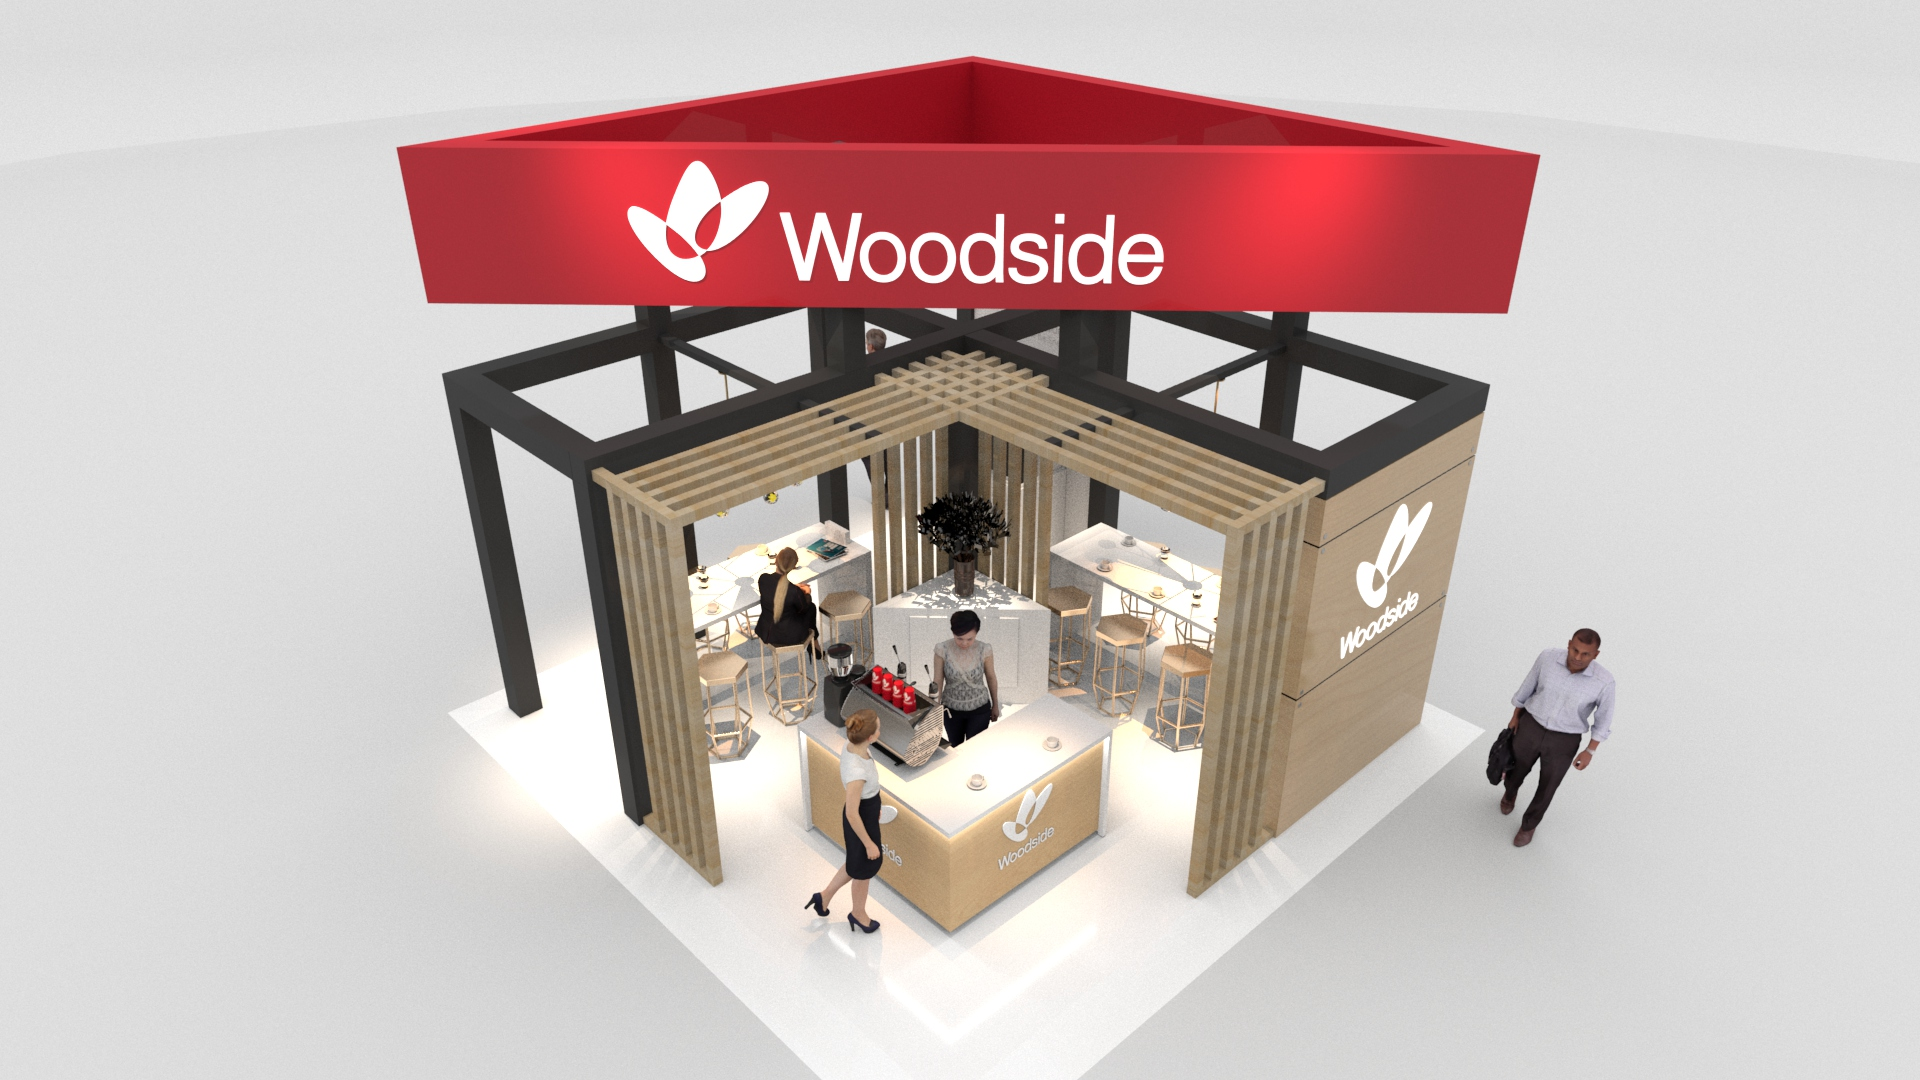 Woodside LNG19 Final design